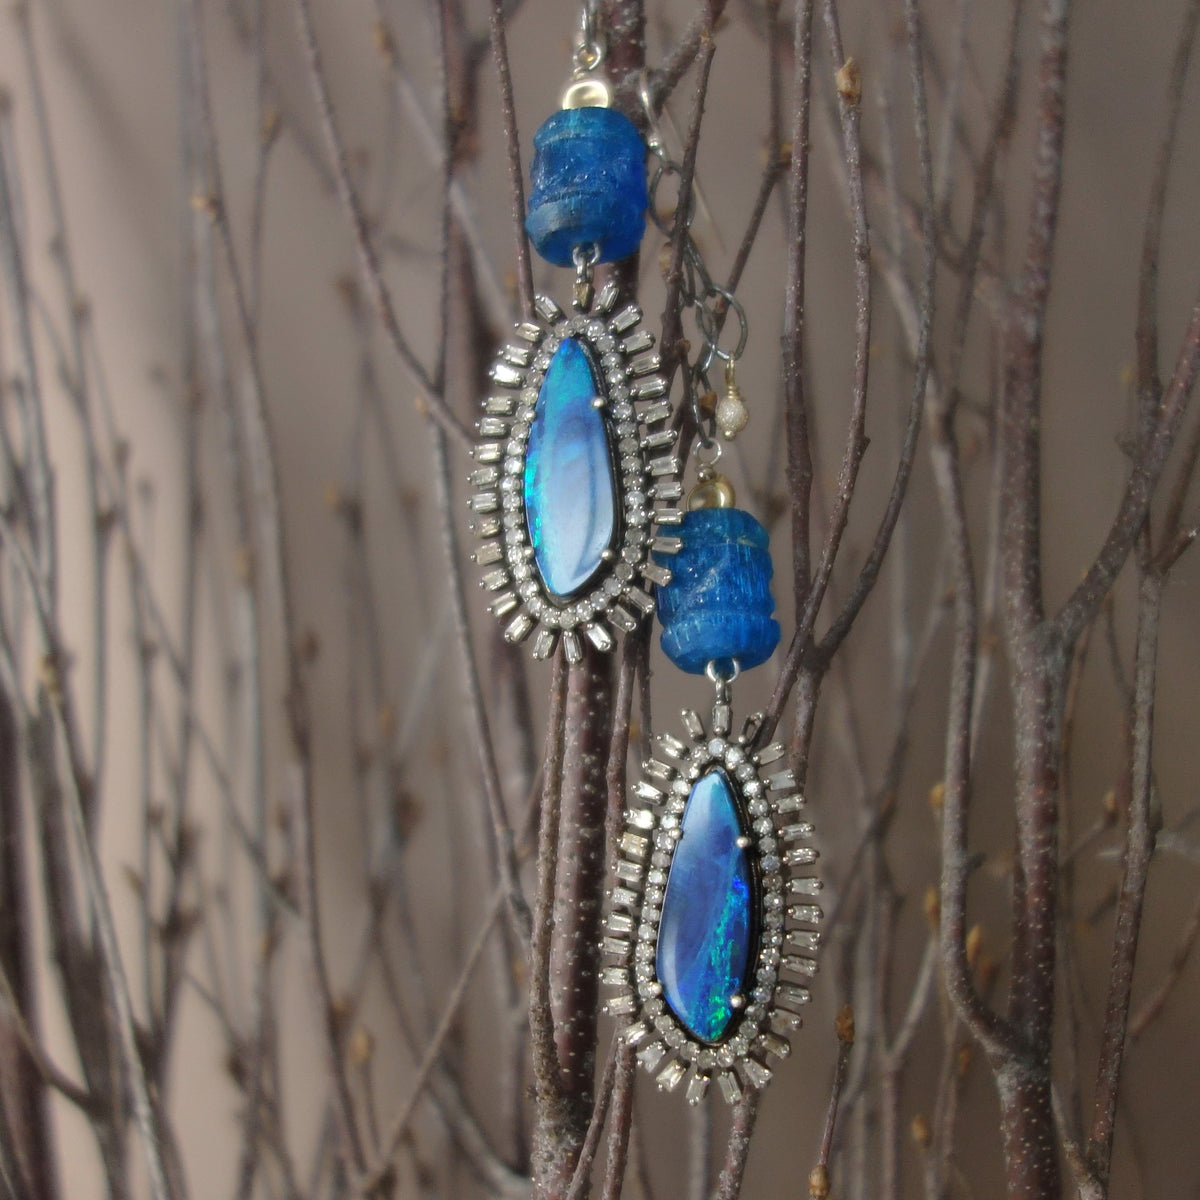 The Sun Also Rises: Opal, Diamond, and Apatite earring